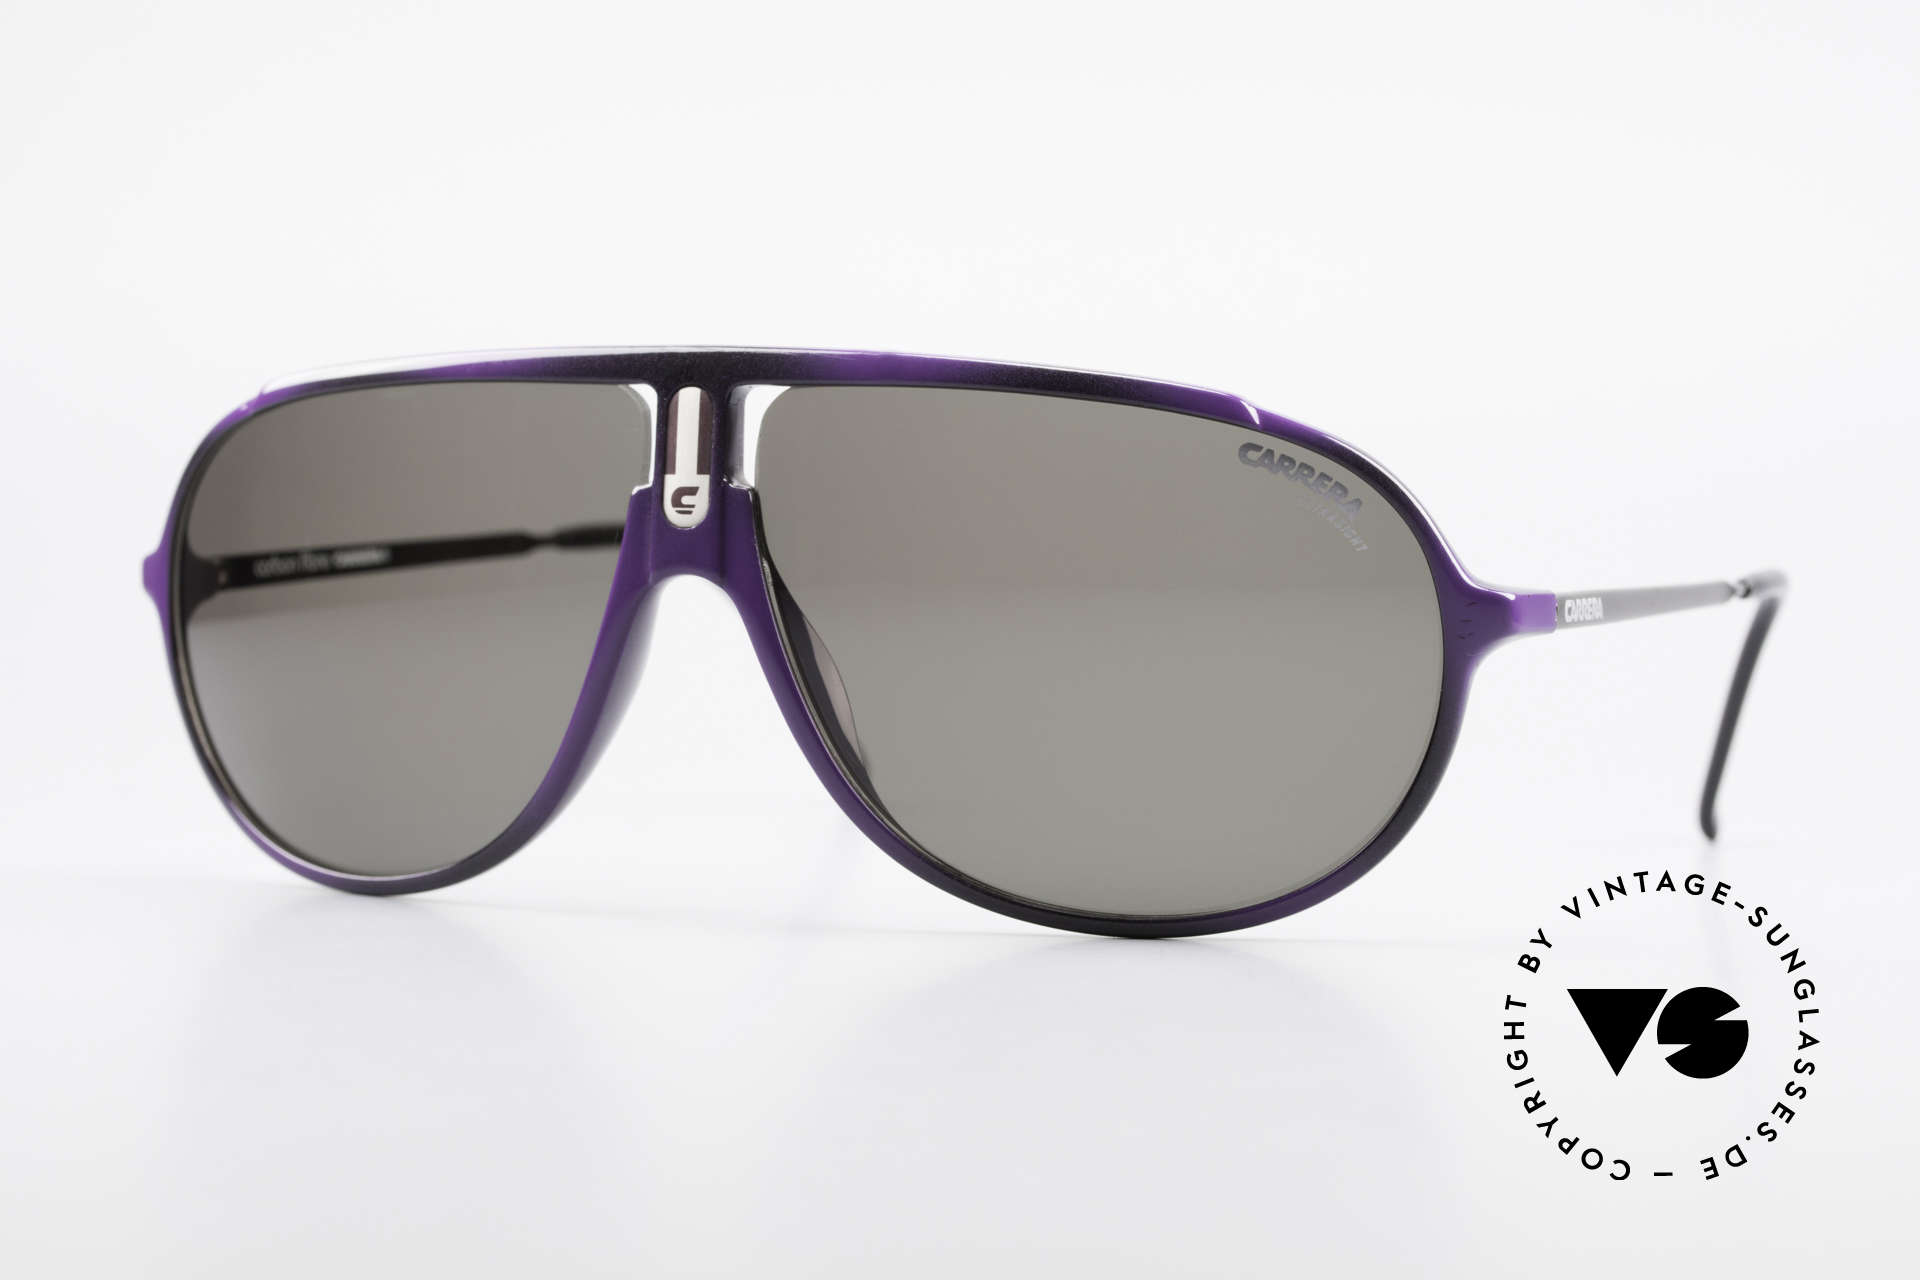 Carrera 5467 Carbon Fibre Shades Vintage, high-end vintage Carrera sunglasses of the 80's, Made for Men